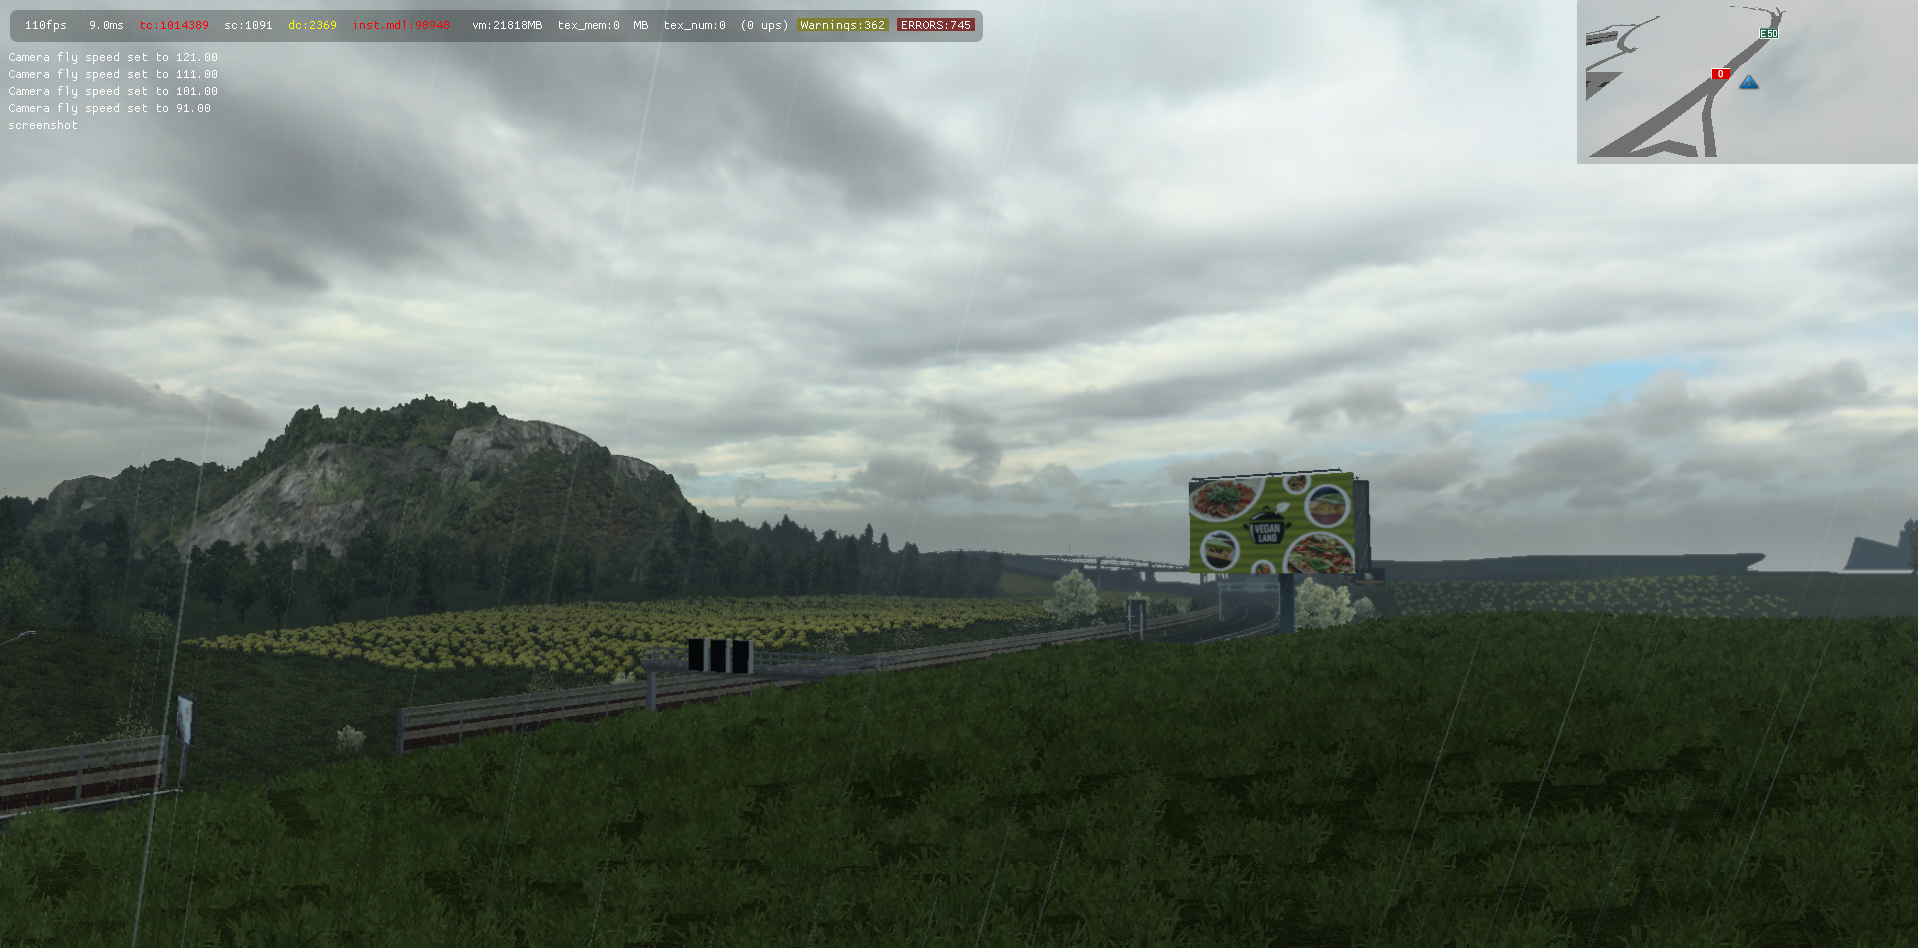 ets2_20210621_211100_00.png